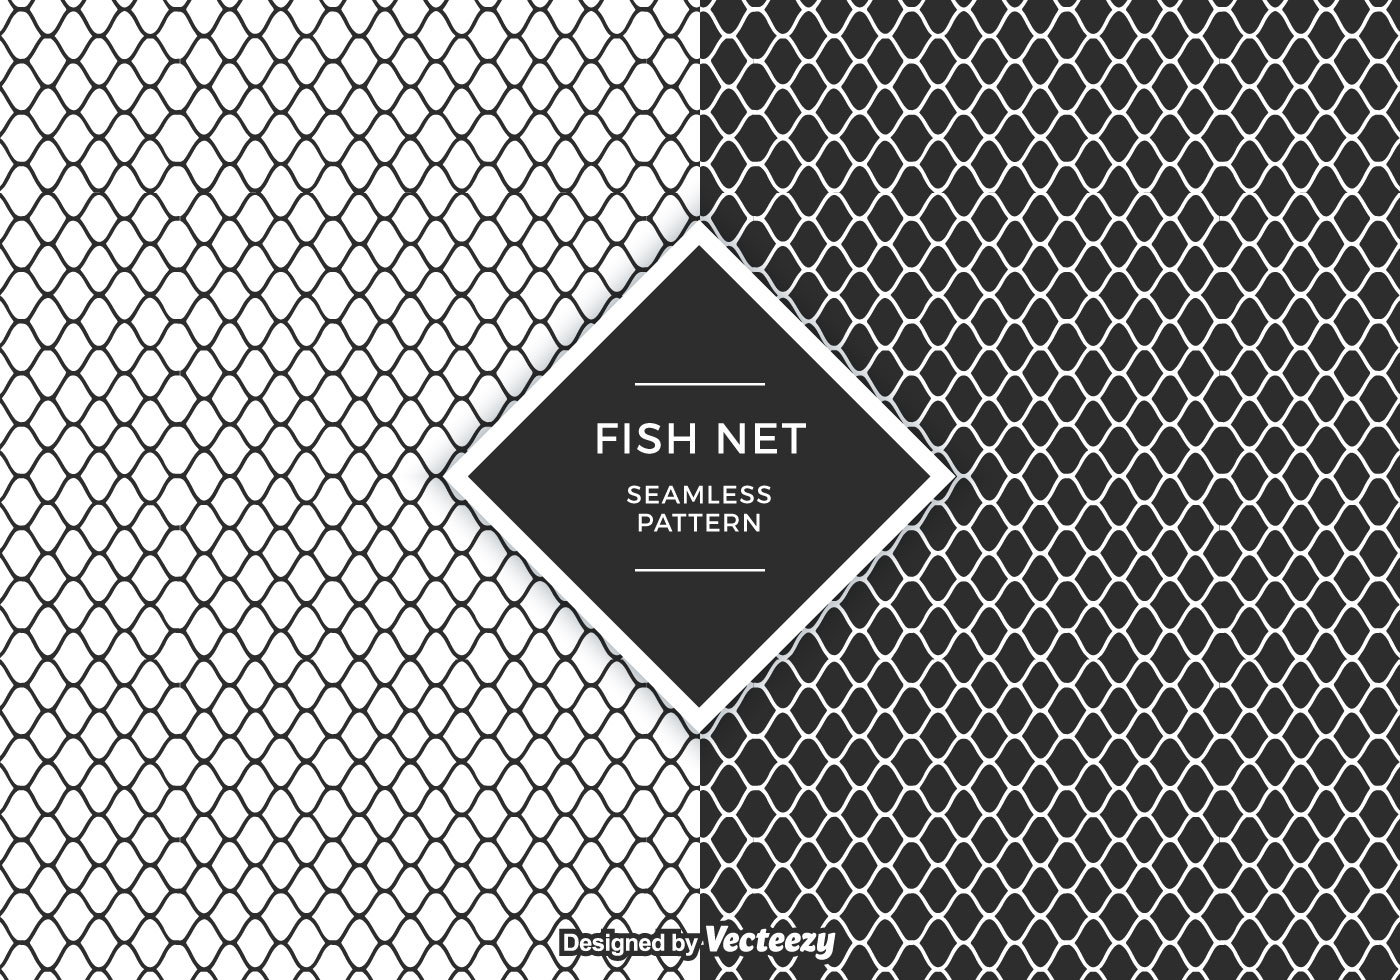 Mesh Fabric Free Vector Art - (413 Free Downloads)